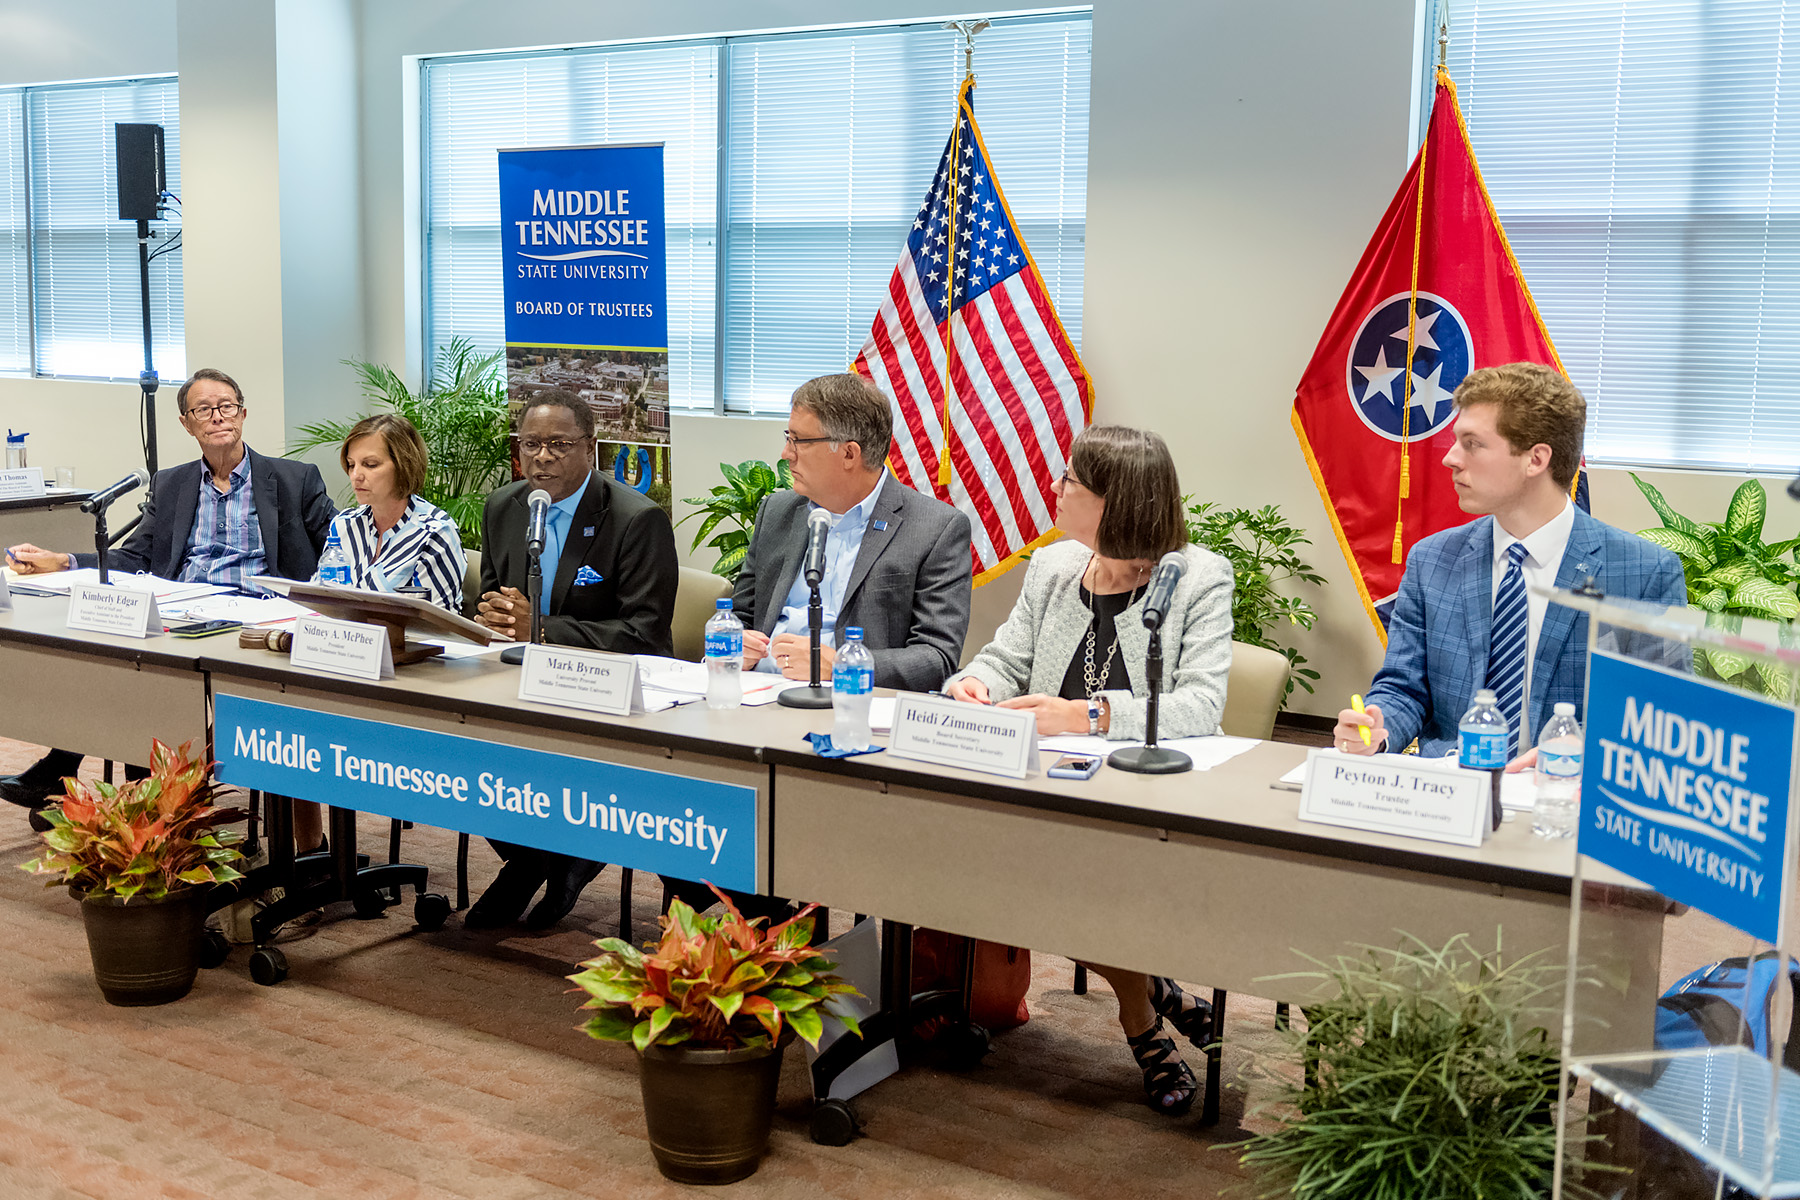 Agreement to Transfer Law School to Murfreesboro with MTSU and Valparaiso University